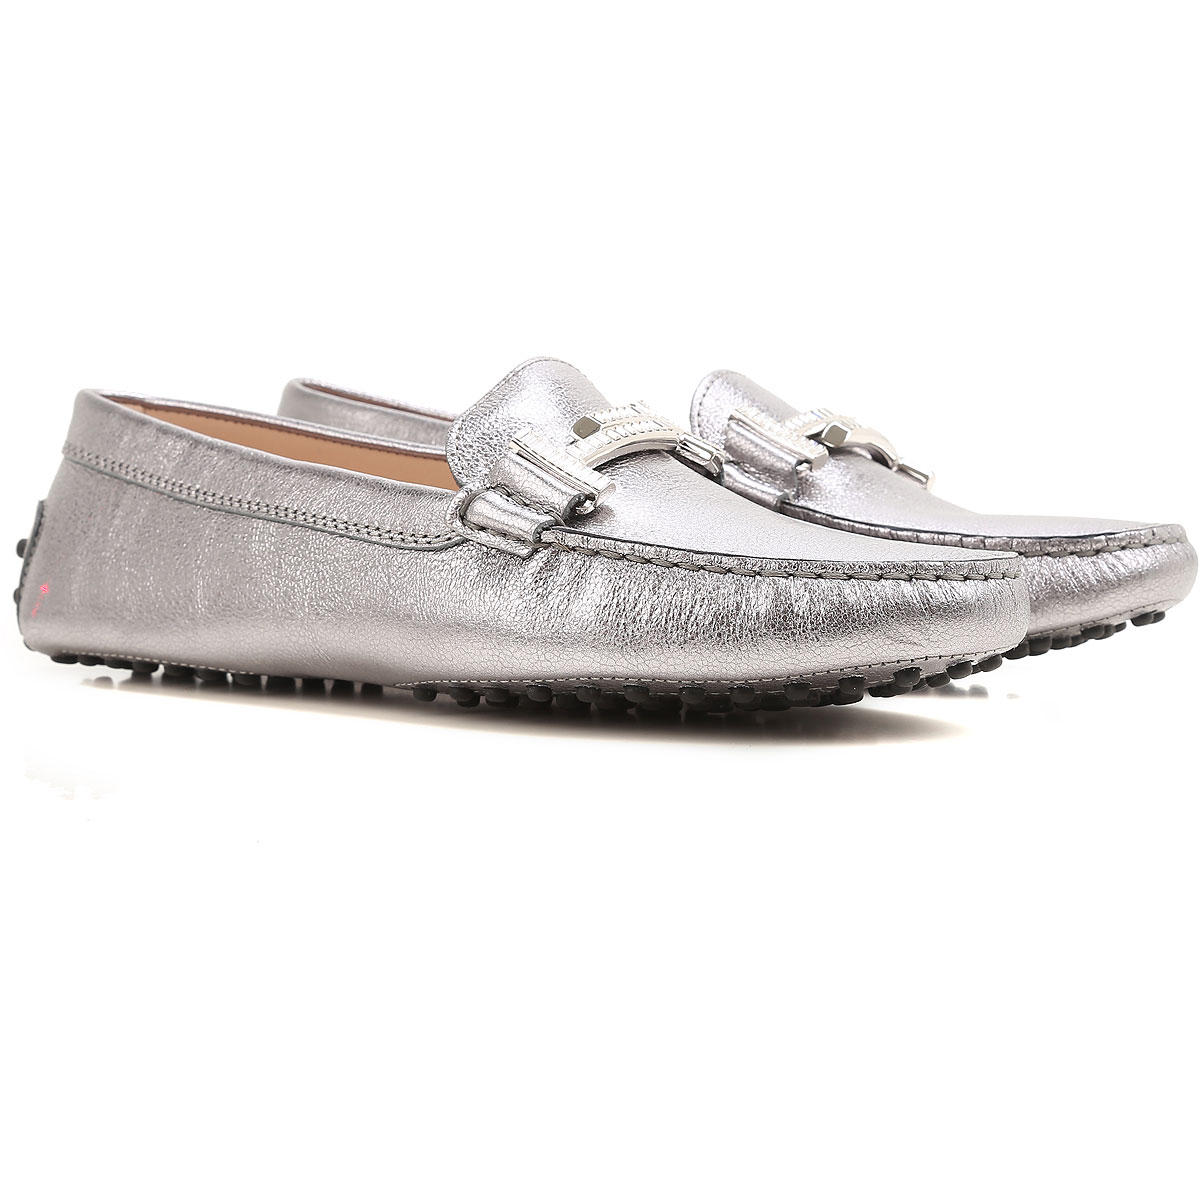 Womens Shoes Tods Style code xxw00g0q492mecb202 398097